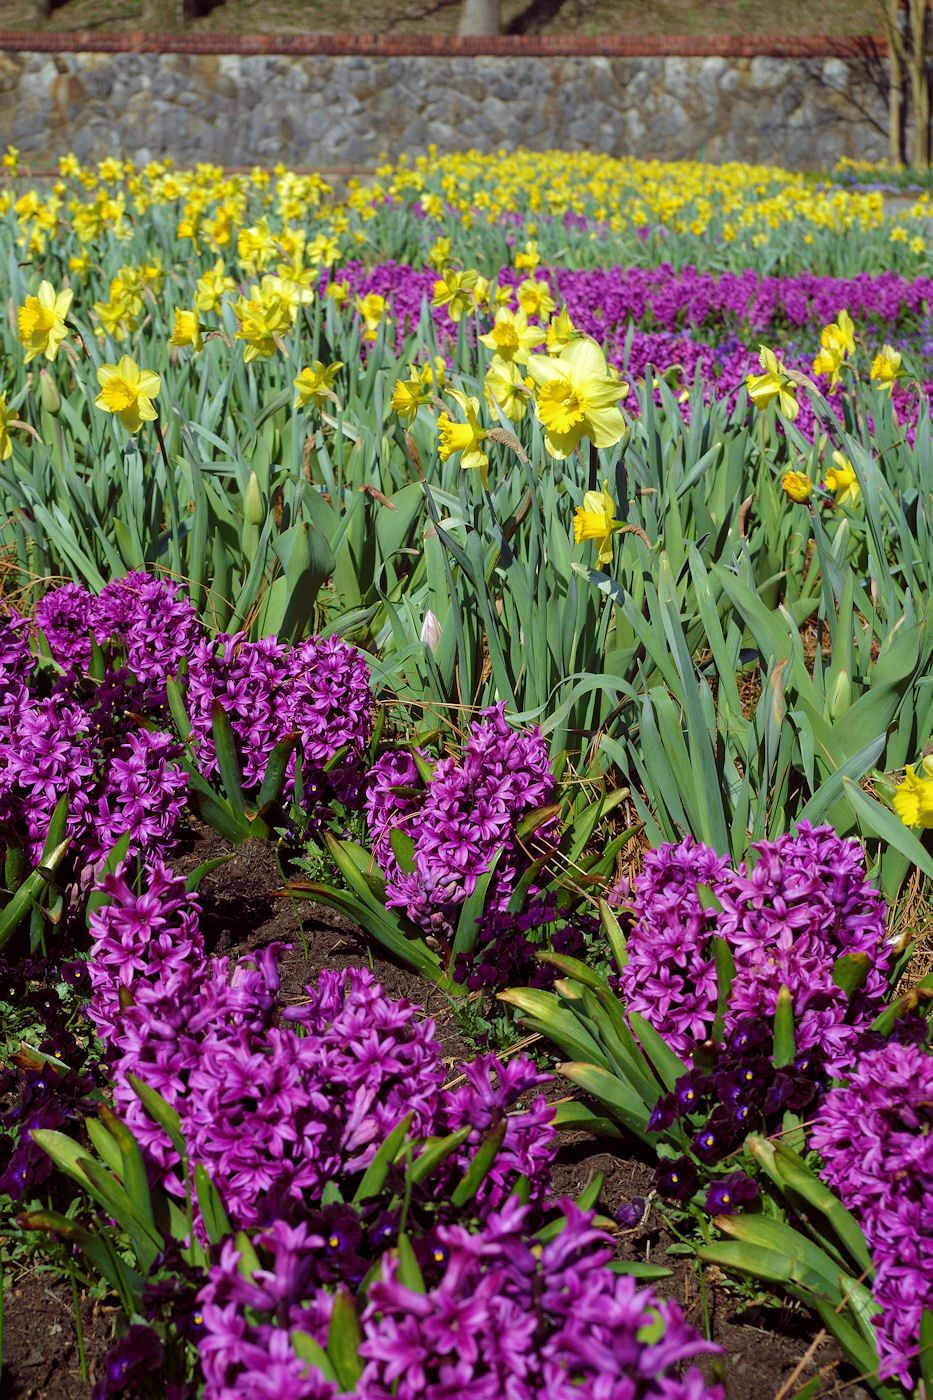 Todays Blooms In The Biltmore Estate Walled Garden March 24 2015